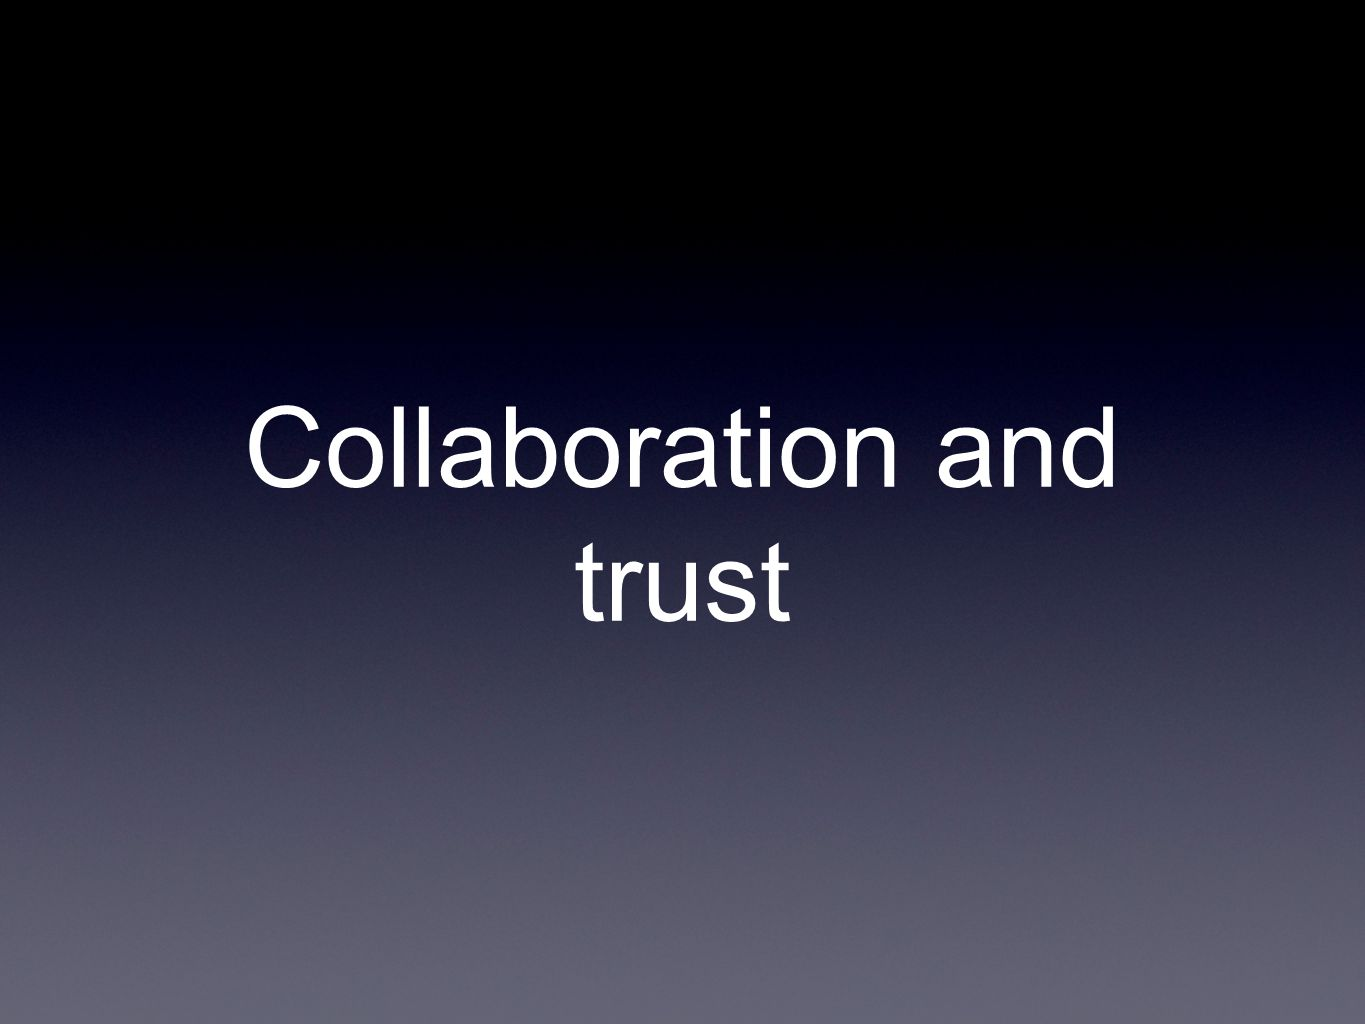 Collaboration and trust